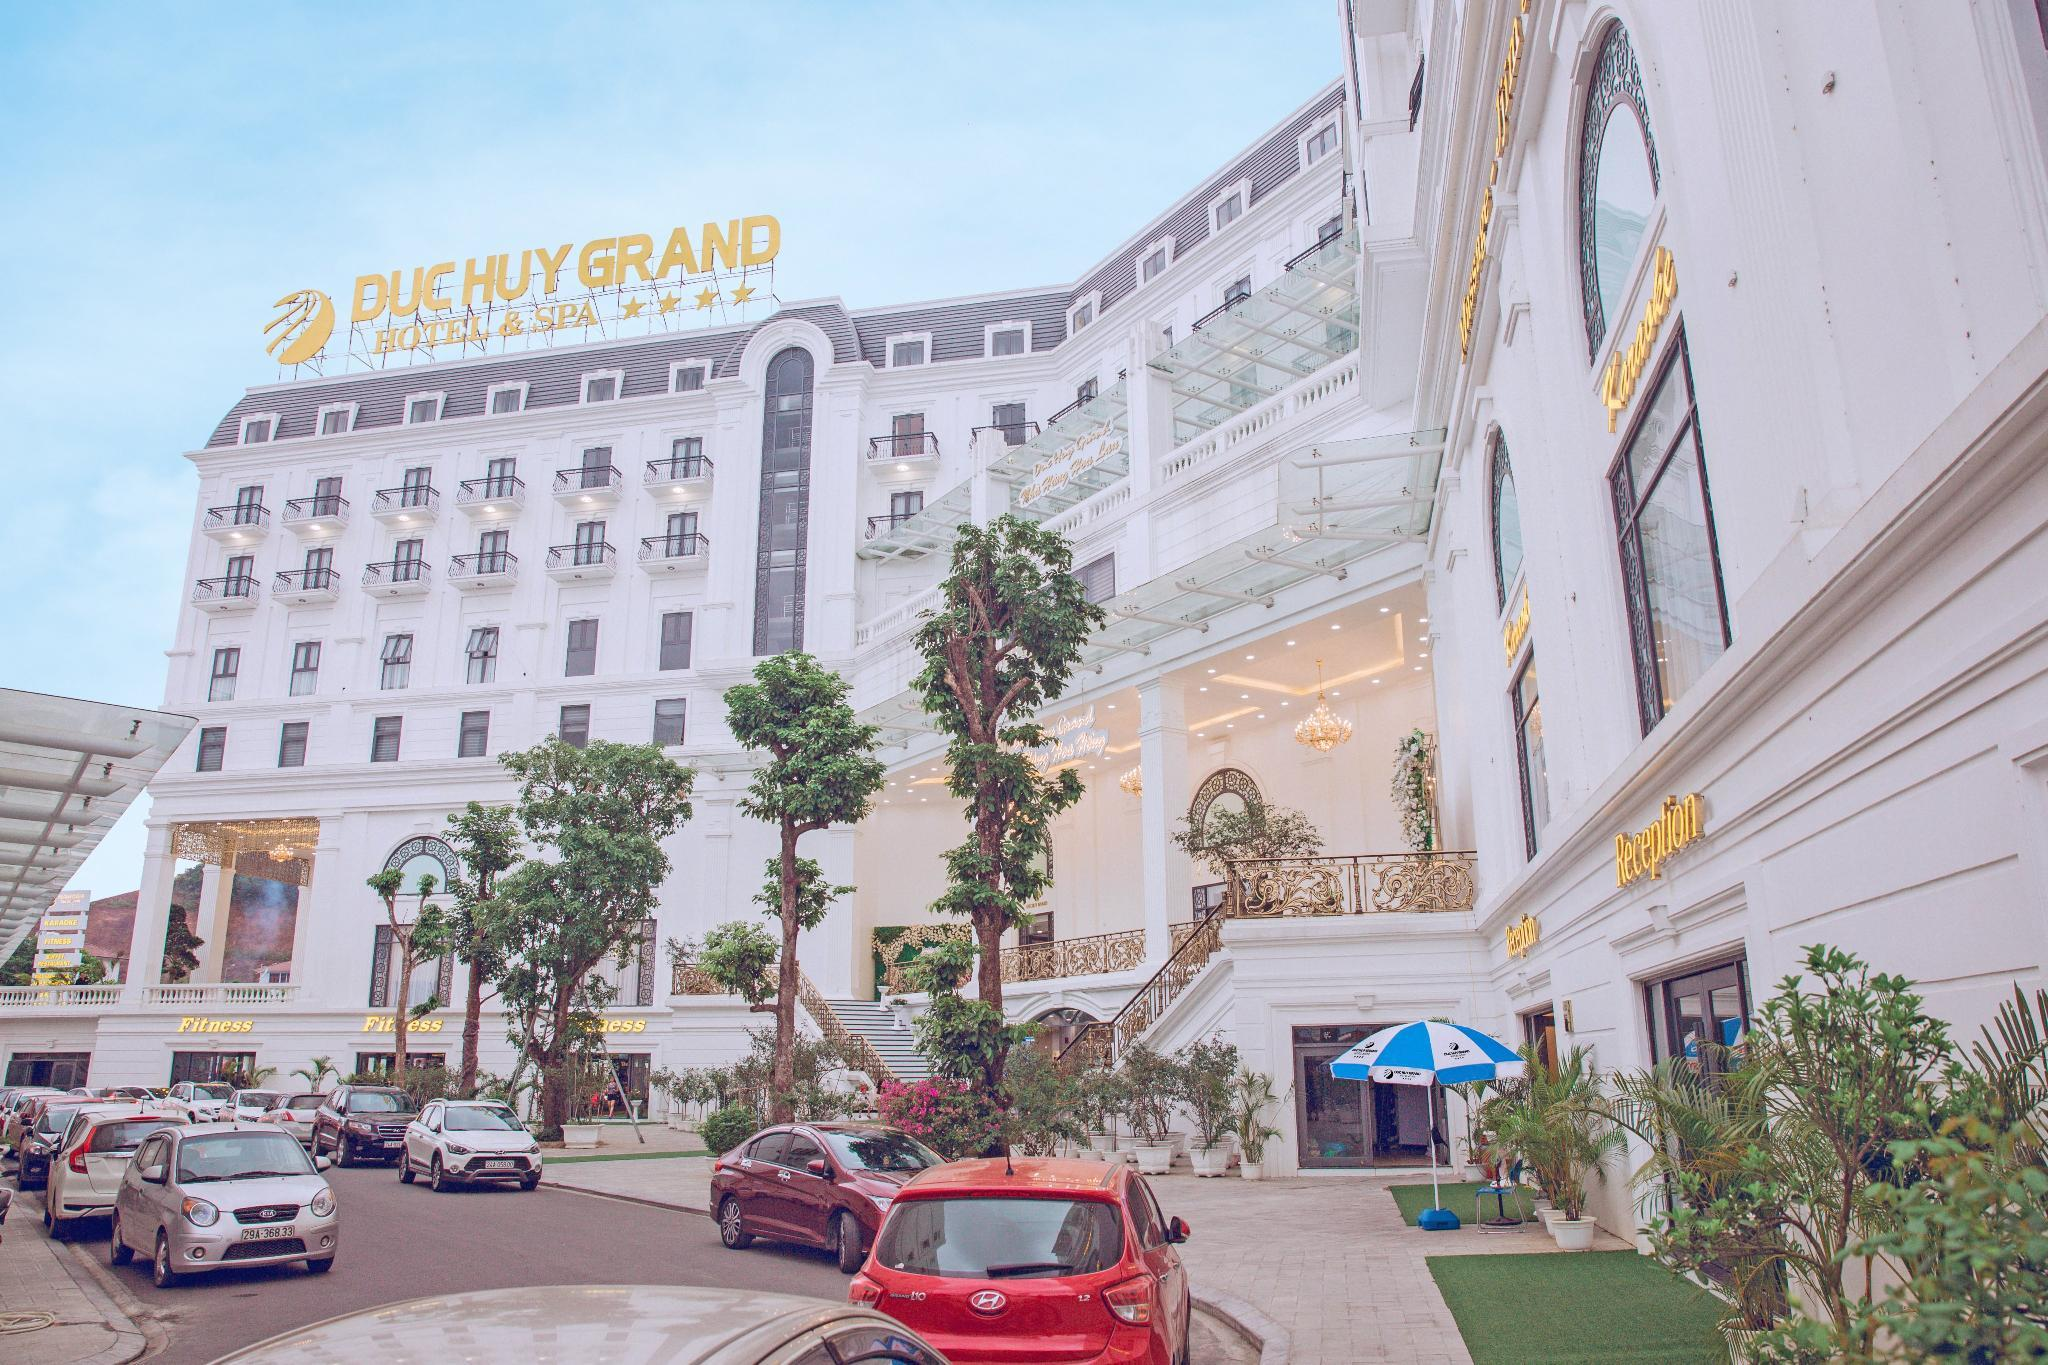 Duc Huy Grand Hotel And Spa